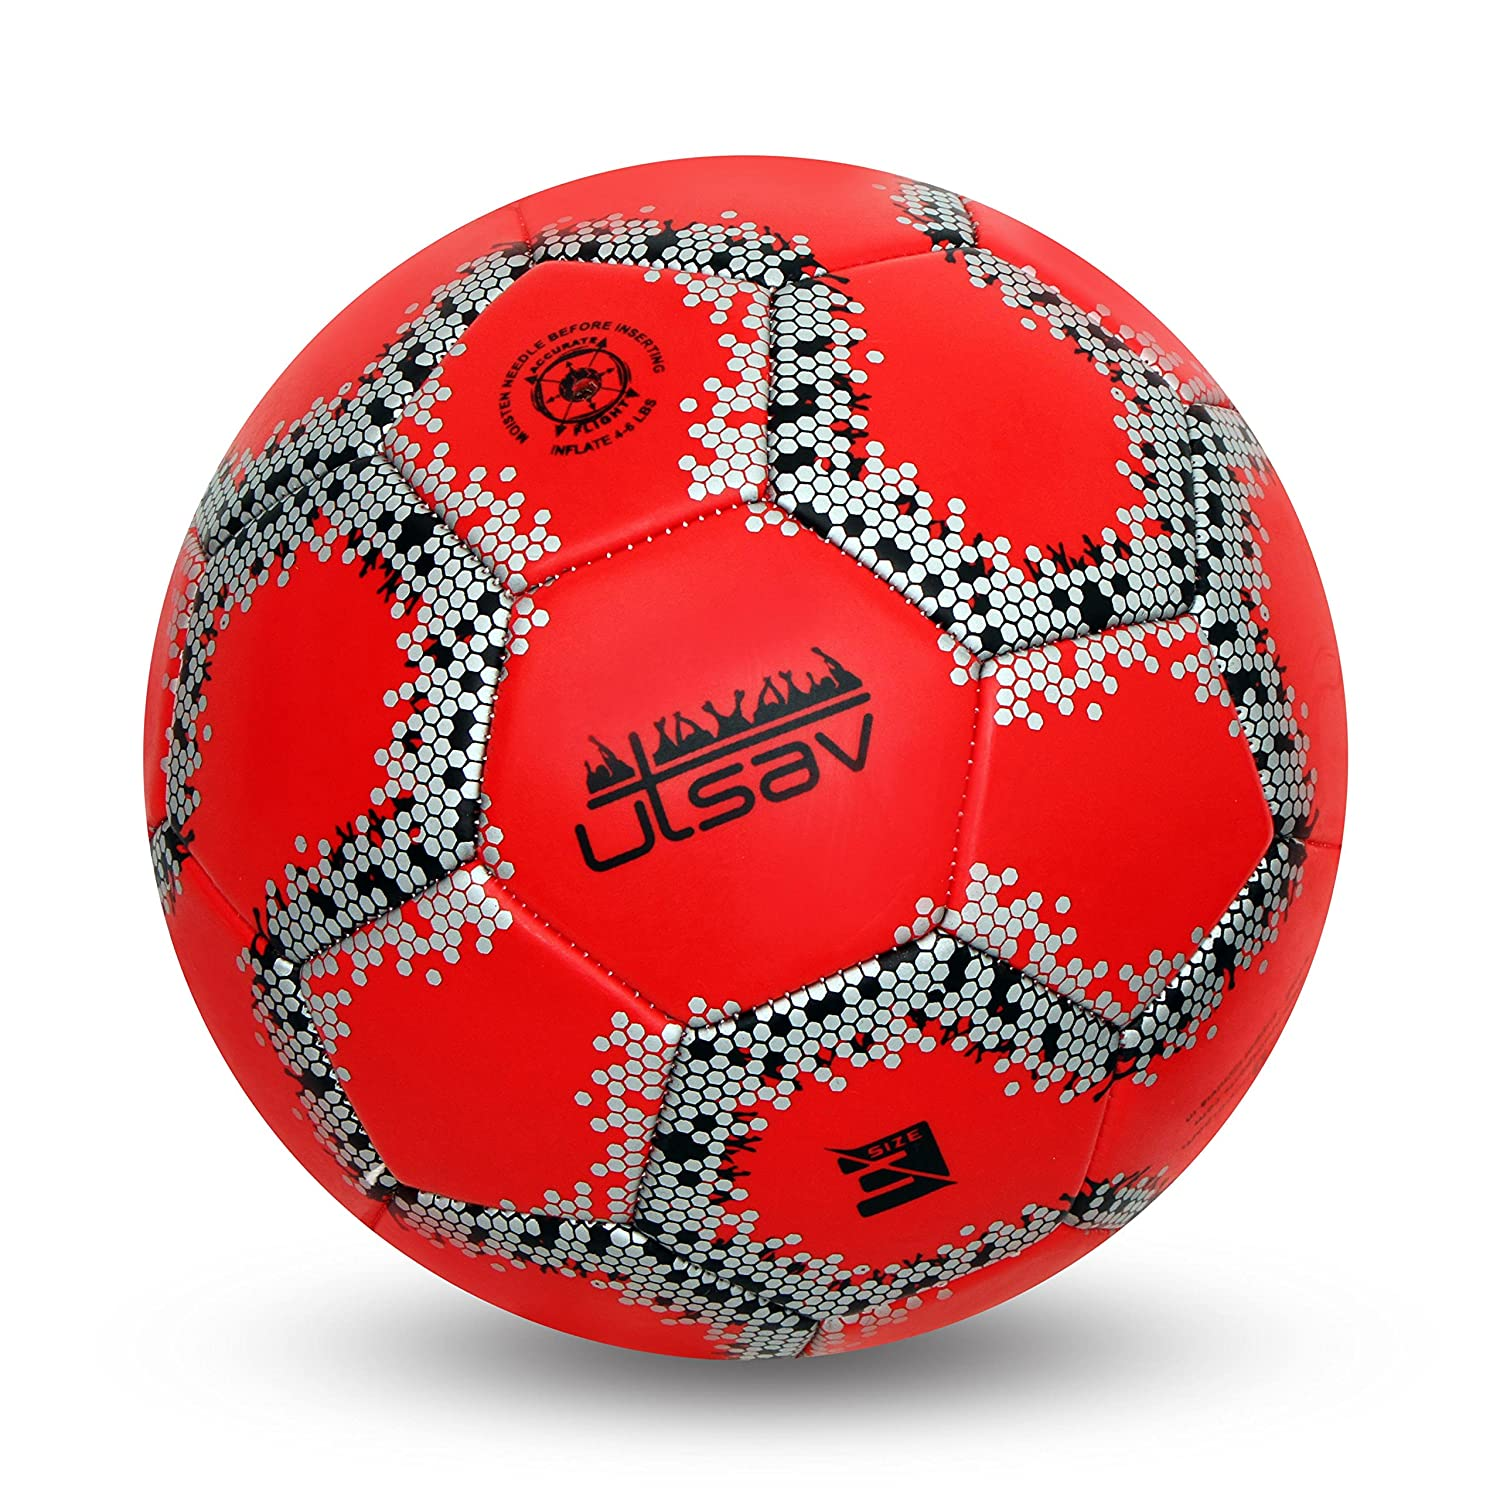 cb270d1aef50 Buy Nivia Utsav Machine Stitch Football Size 3 Online at Low Prices in India  - Amazon.in